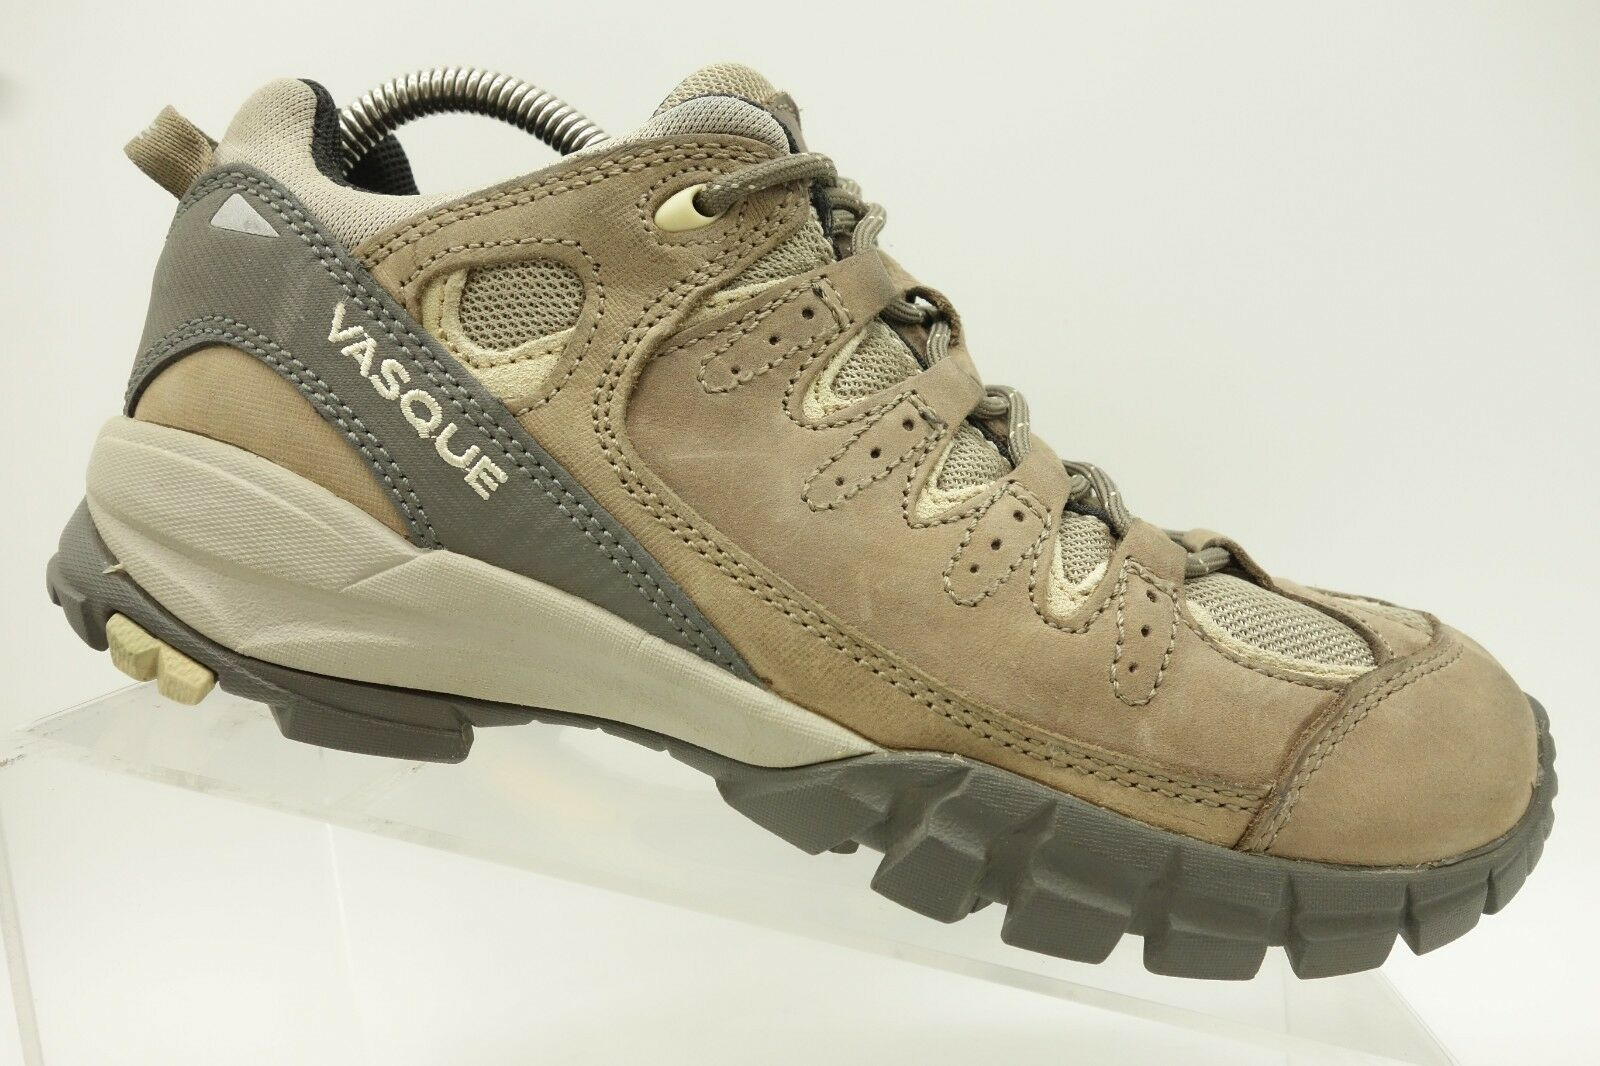 Vasque Brown Leather Lace Up Walking Hiking Trail Outdoors shoes Women's 9.5 M